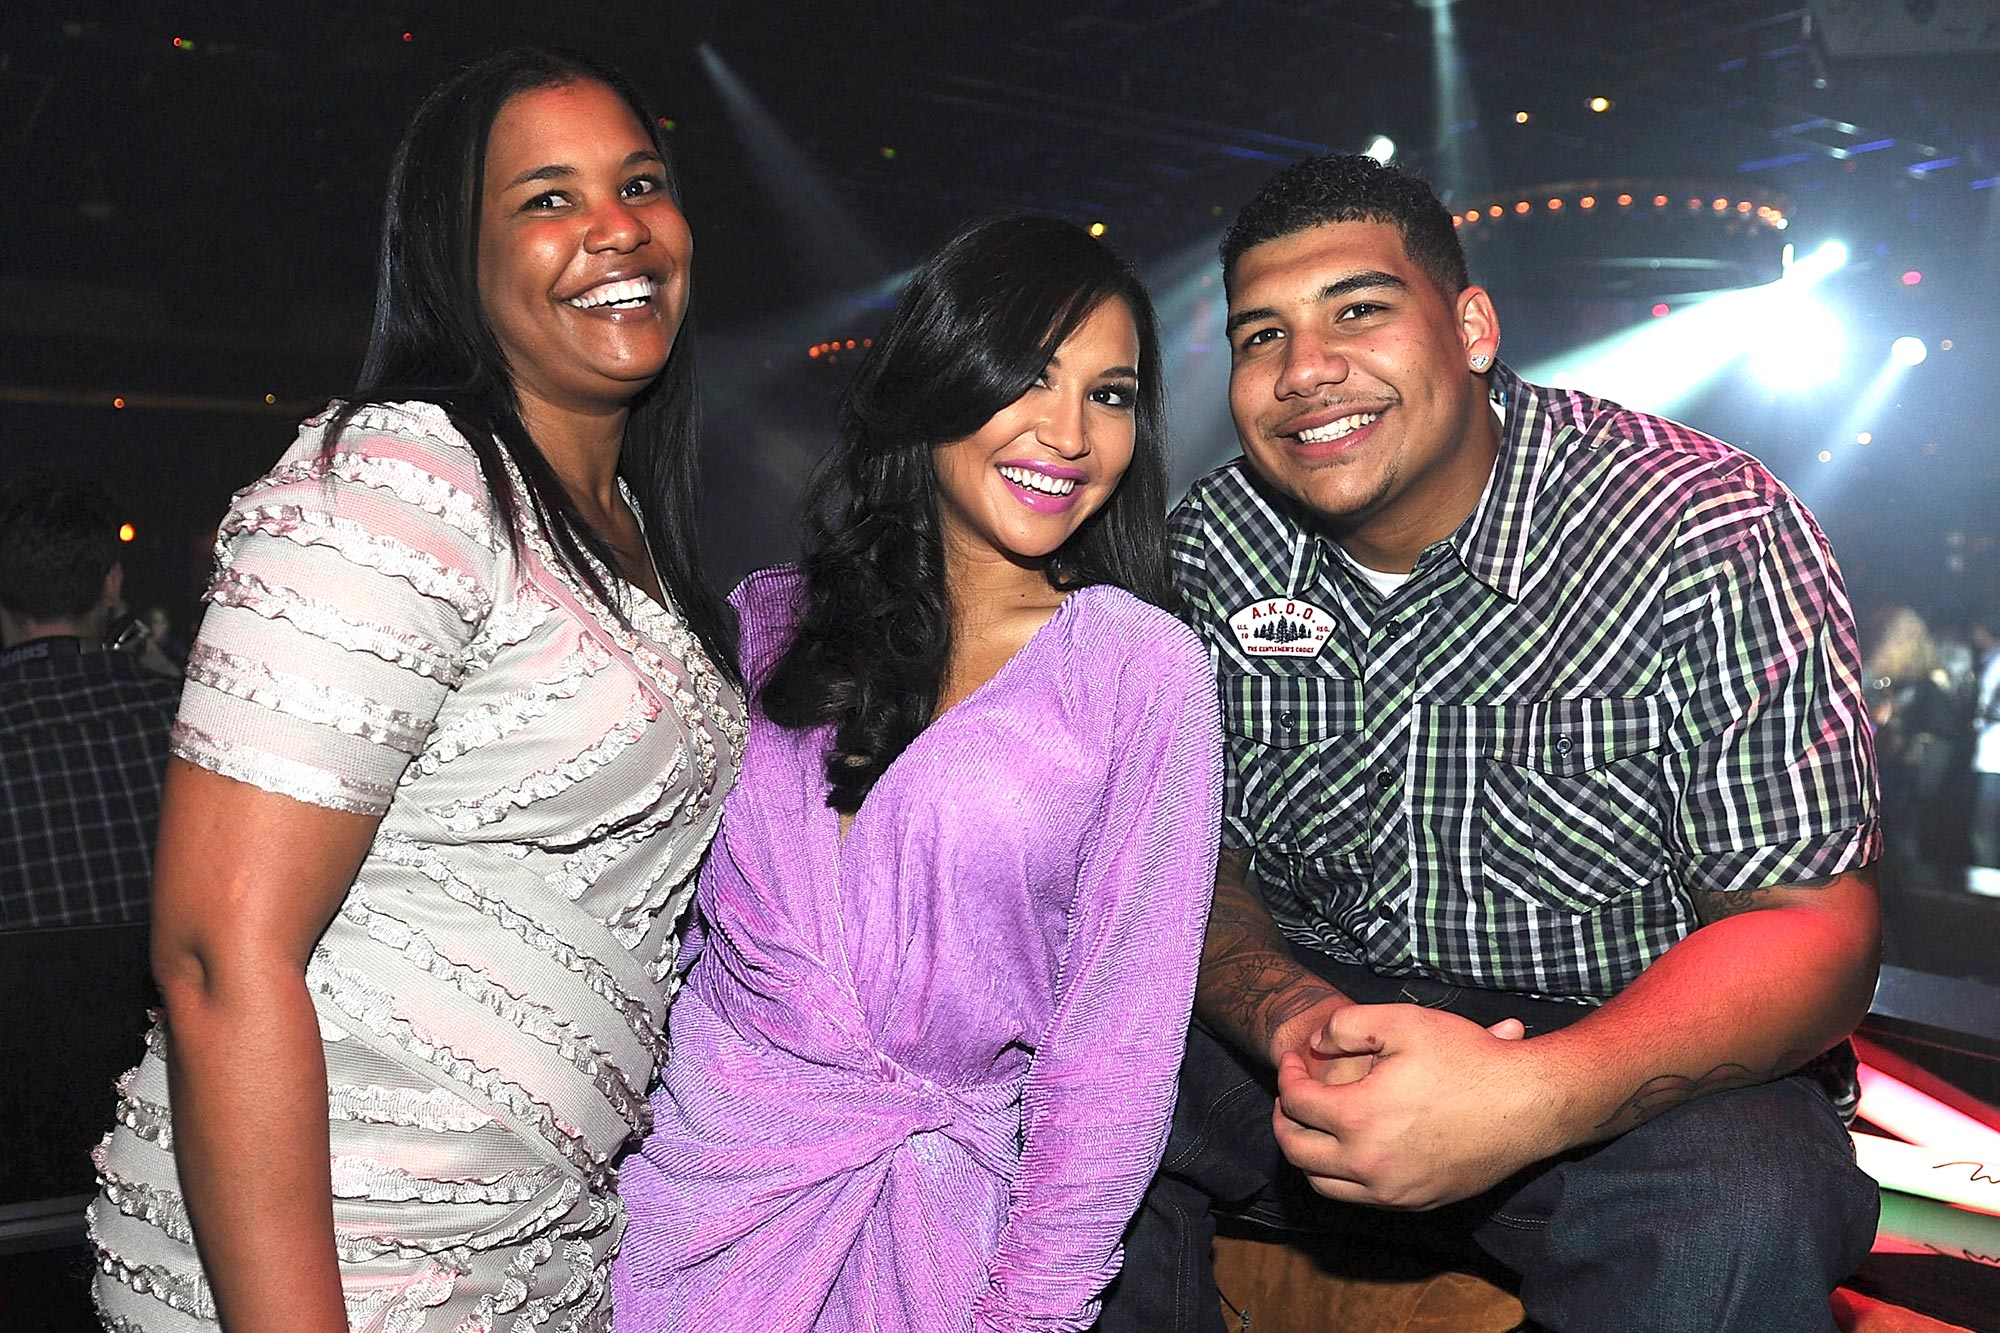 Yolanda Rivera, Naya Rivera and Mychal Rivera